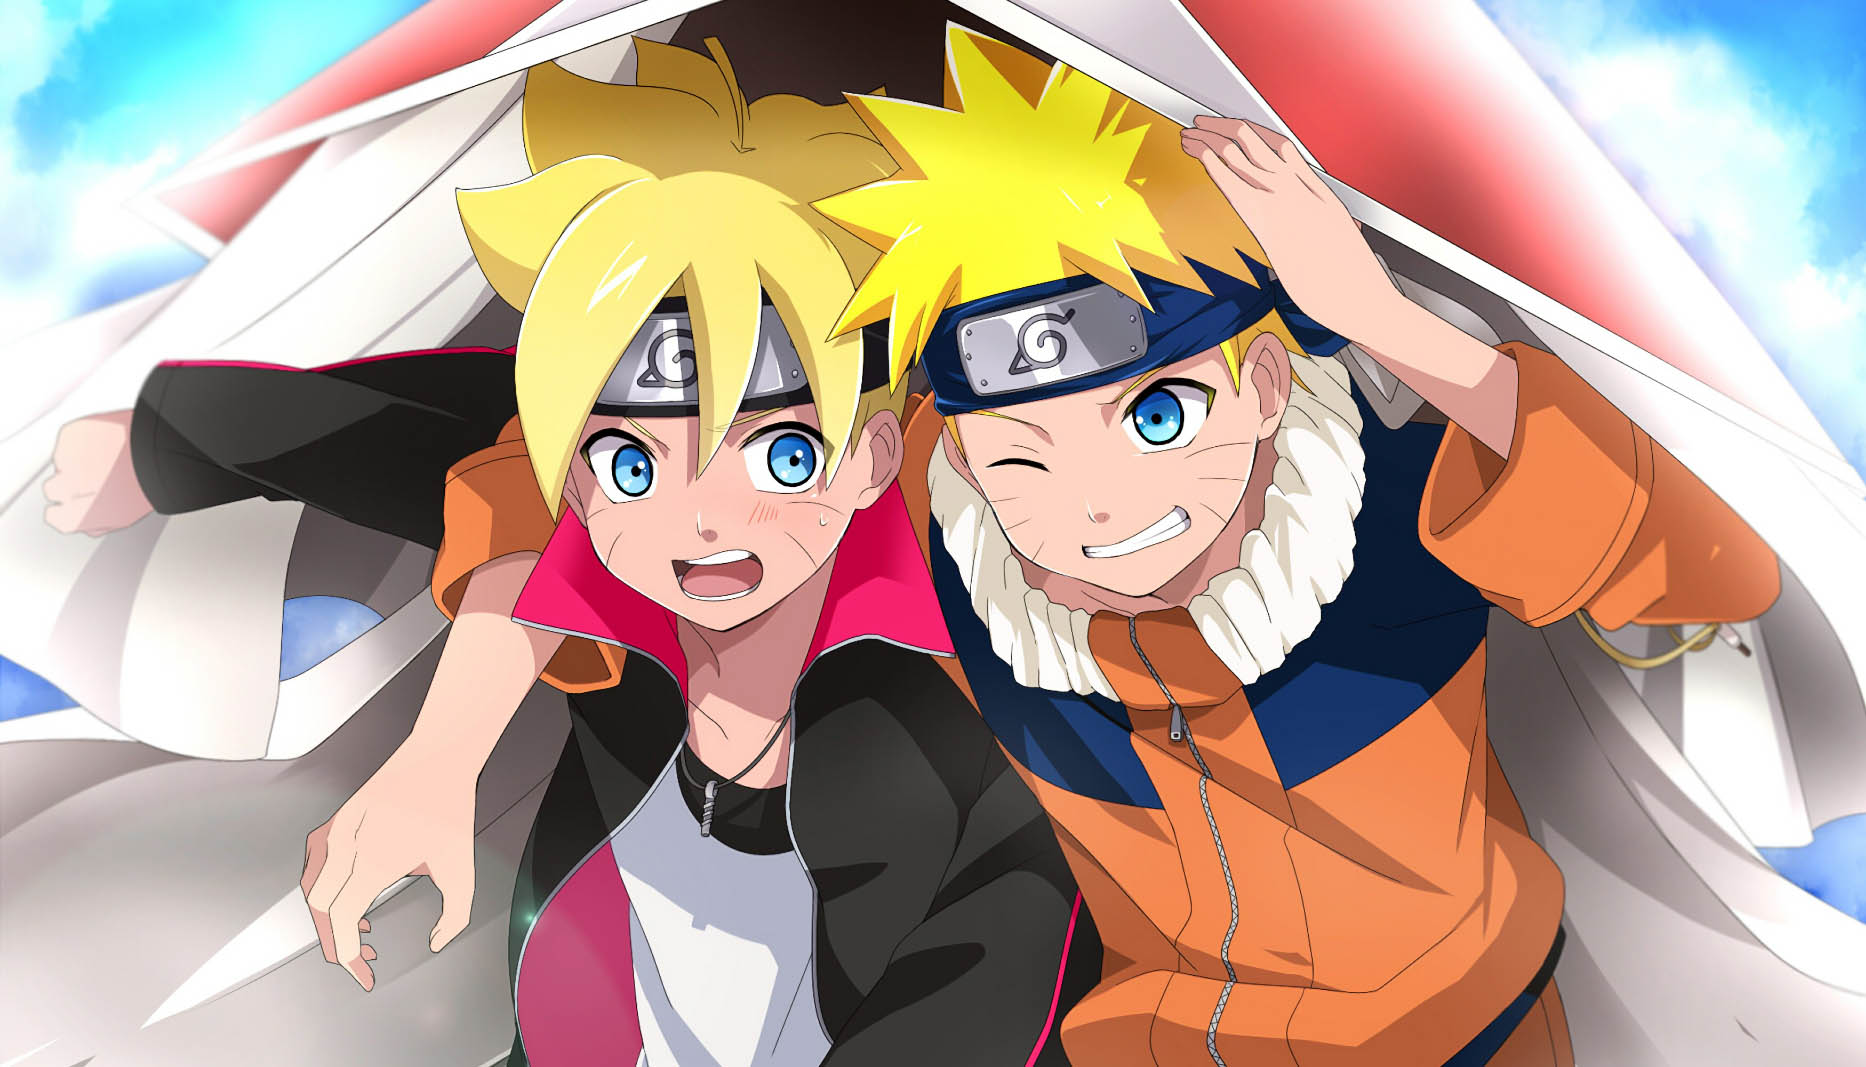 Full Hd Boruto Uzumaki Anime Wallpaper - Boruto Uzumaki Hd 4k , HD Wallpaper & Backgrounds